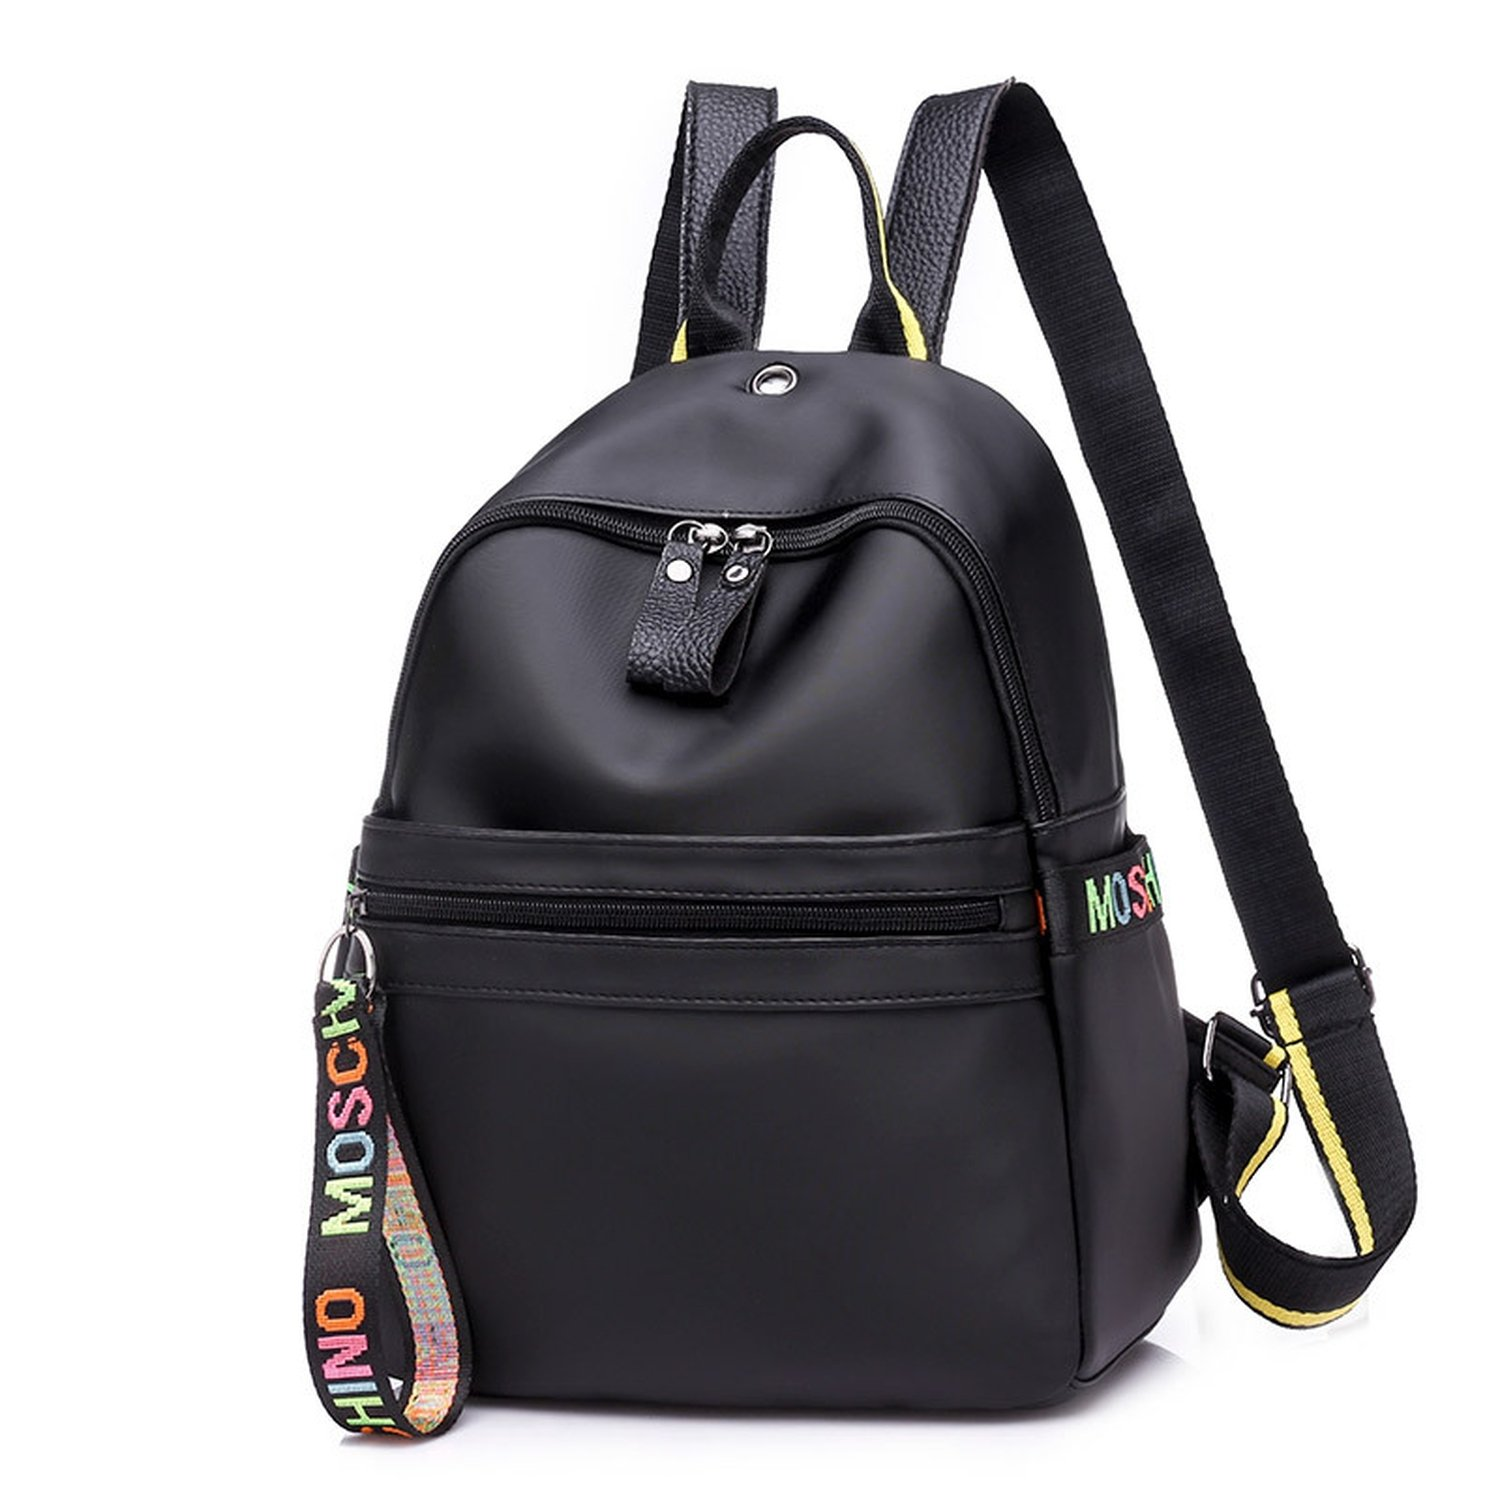 Nylon cloth shoulder bag 2018 new backpack color letters wild student backpack,Colorful tape